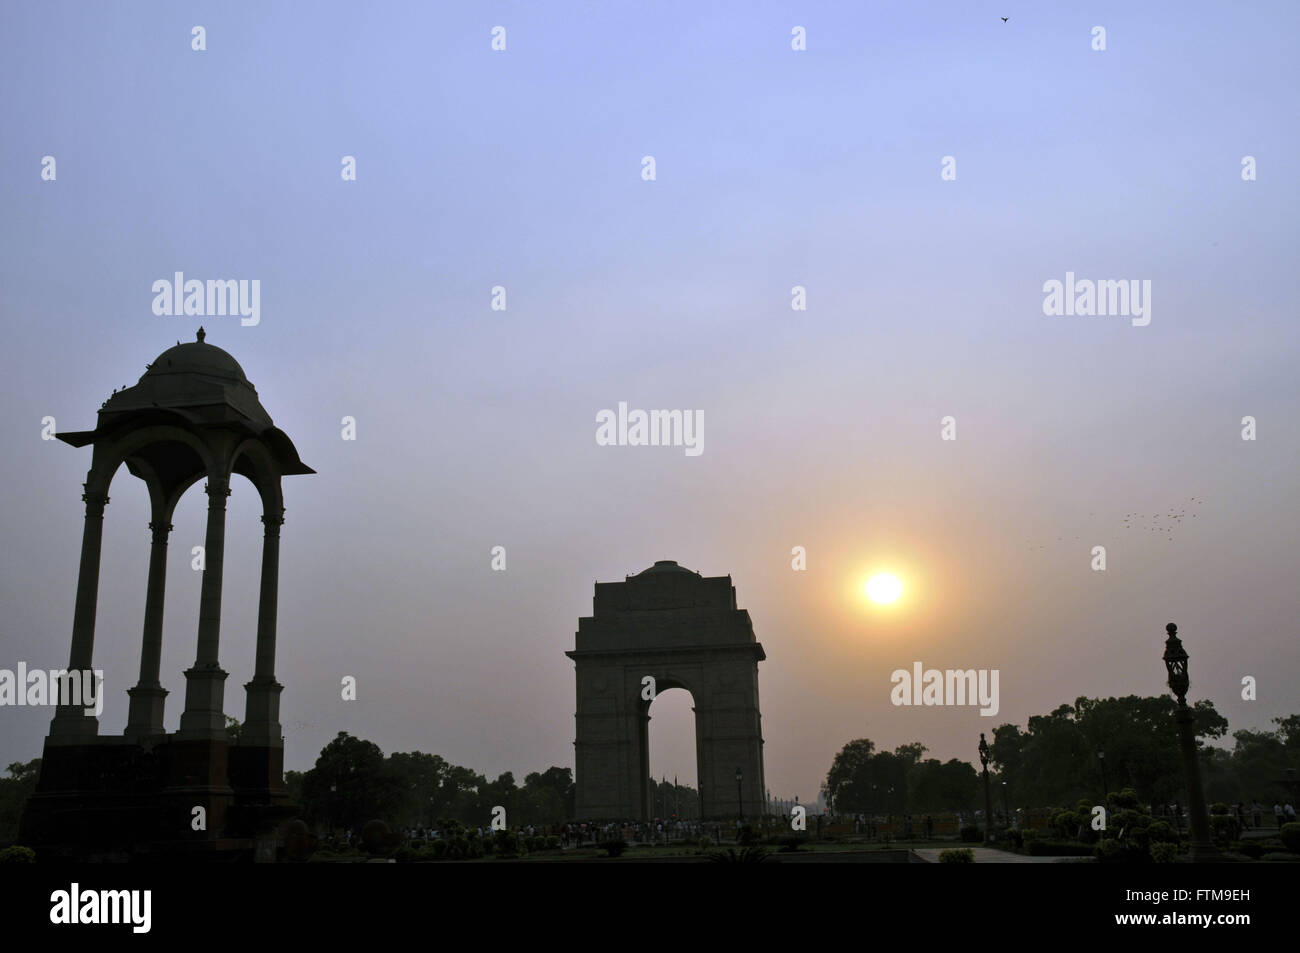 Gate of India in the city of New Delhi - Rajpath - path of major boulevard King City - Stock Image